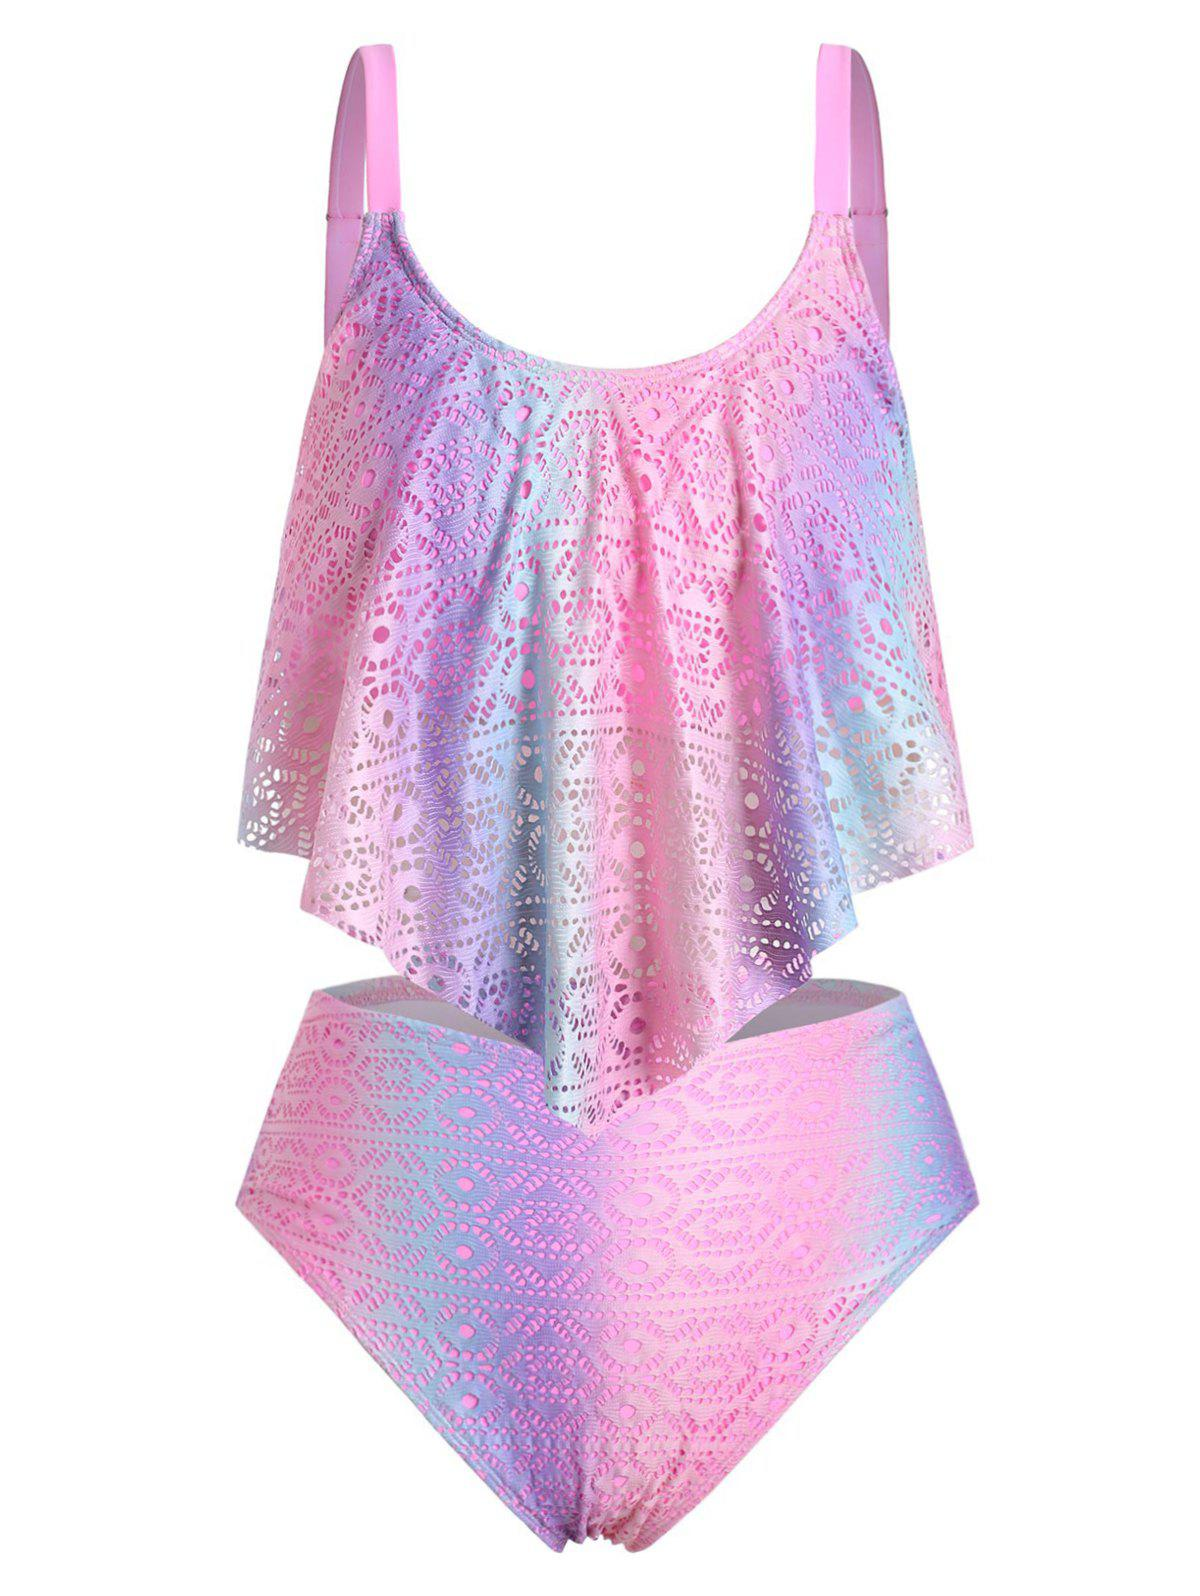 Flounce Perforated Ombre Plus Size Tankini Swimsuit - PINK 2X